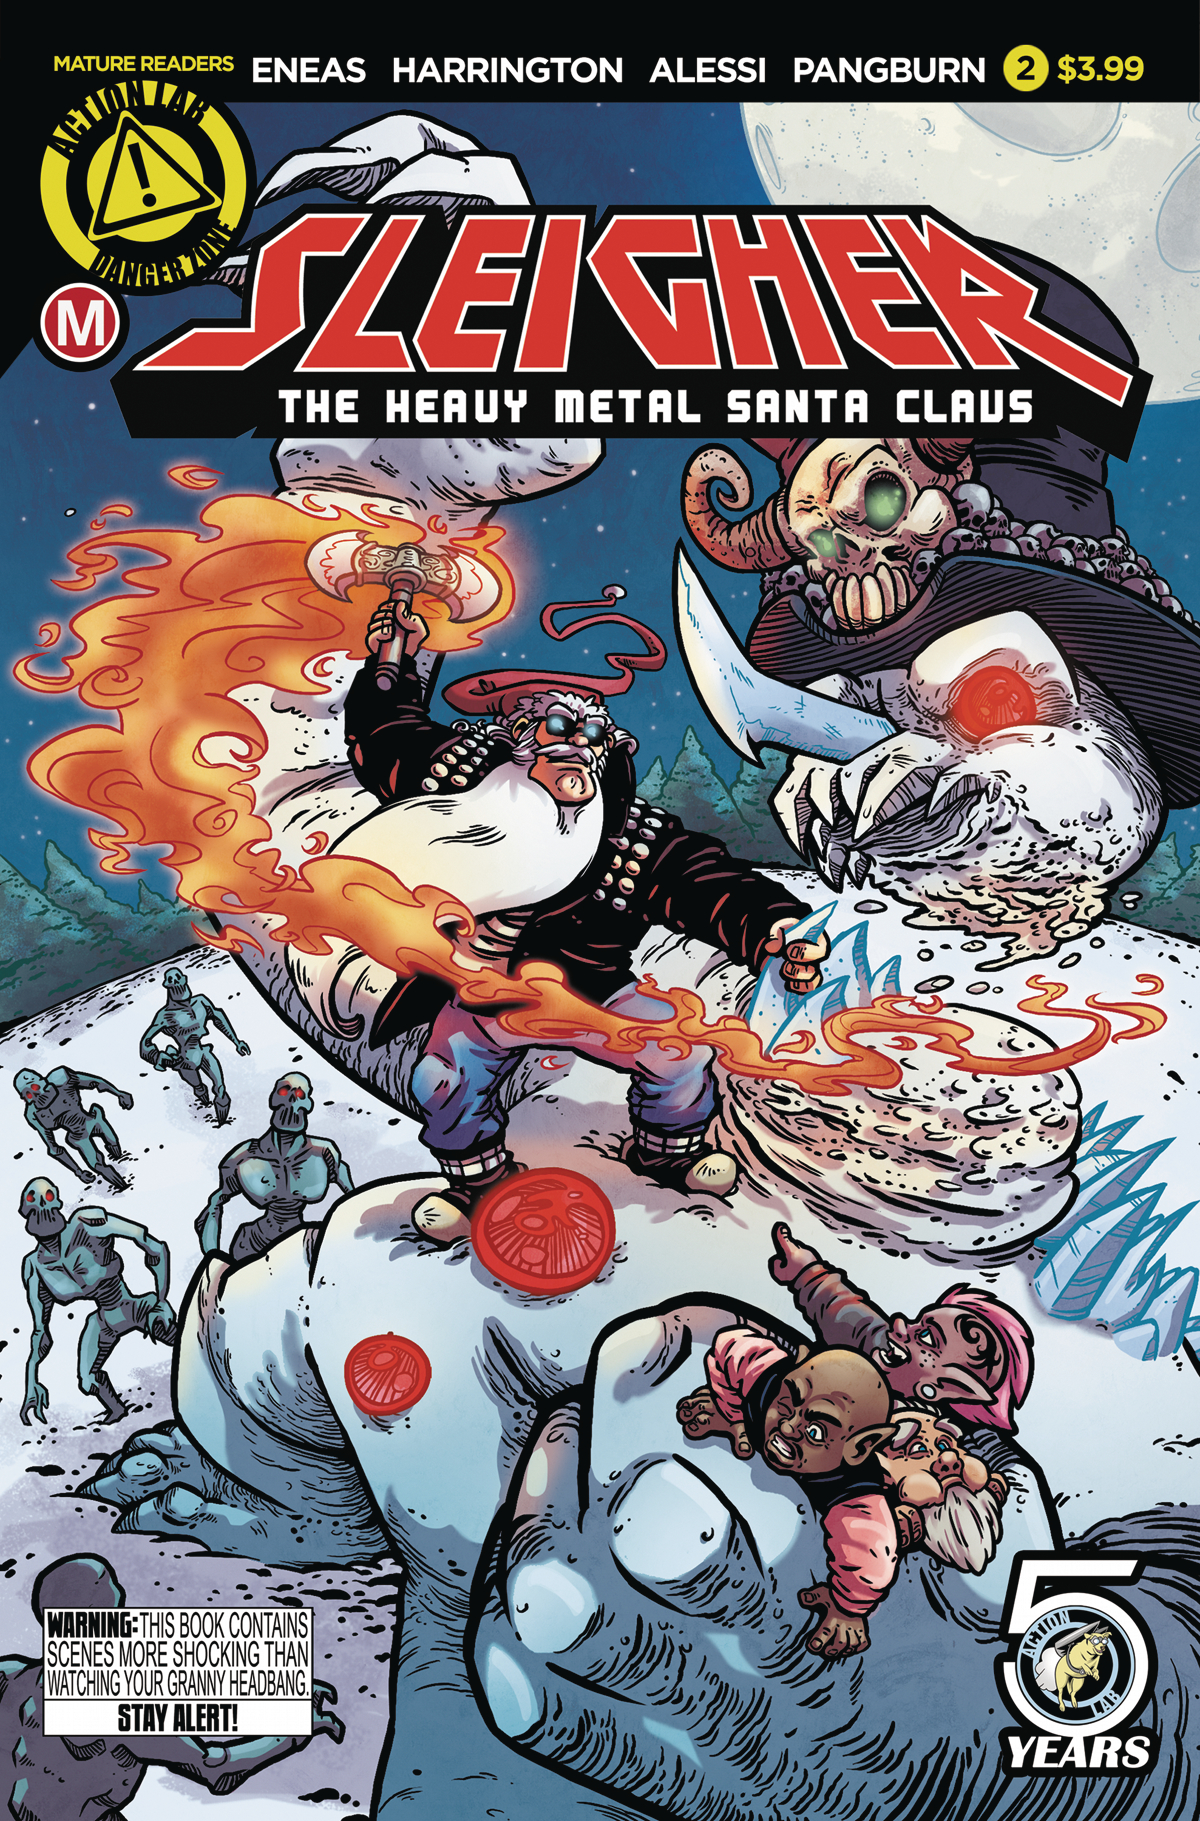 SLEIGHER HEAVY METAL SANTA CLAUS #2 (OF 4) CVR A ENEAS (MR)